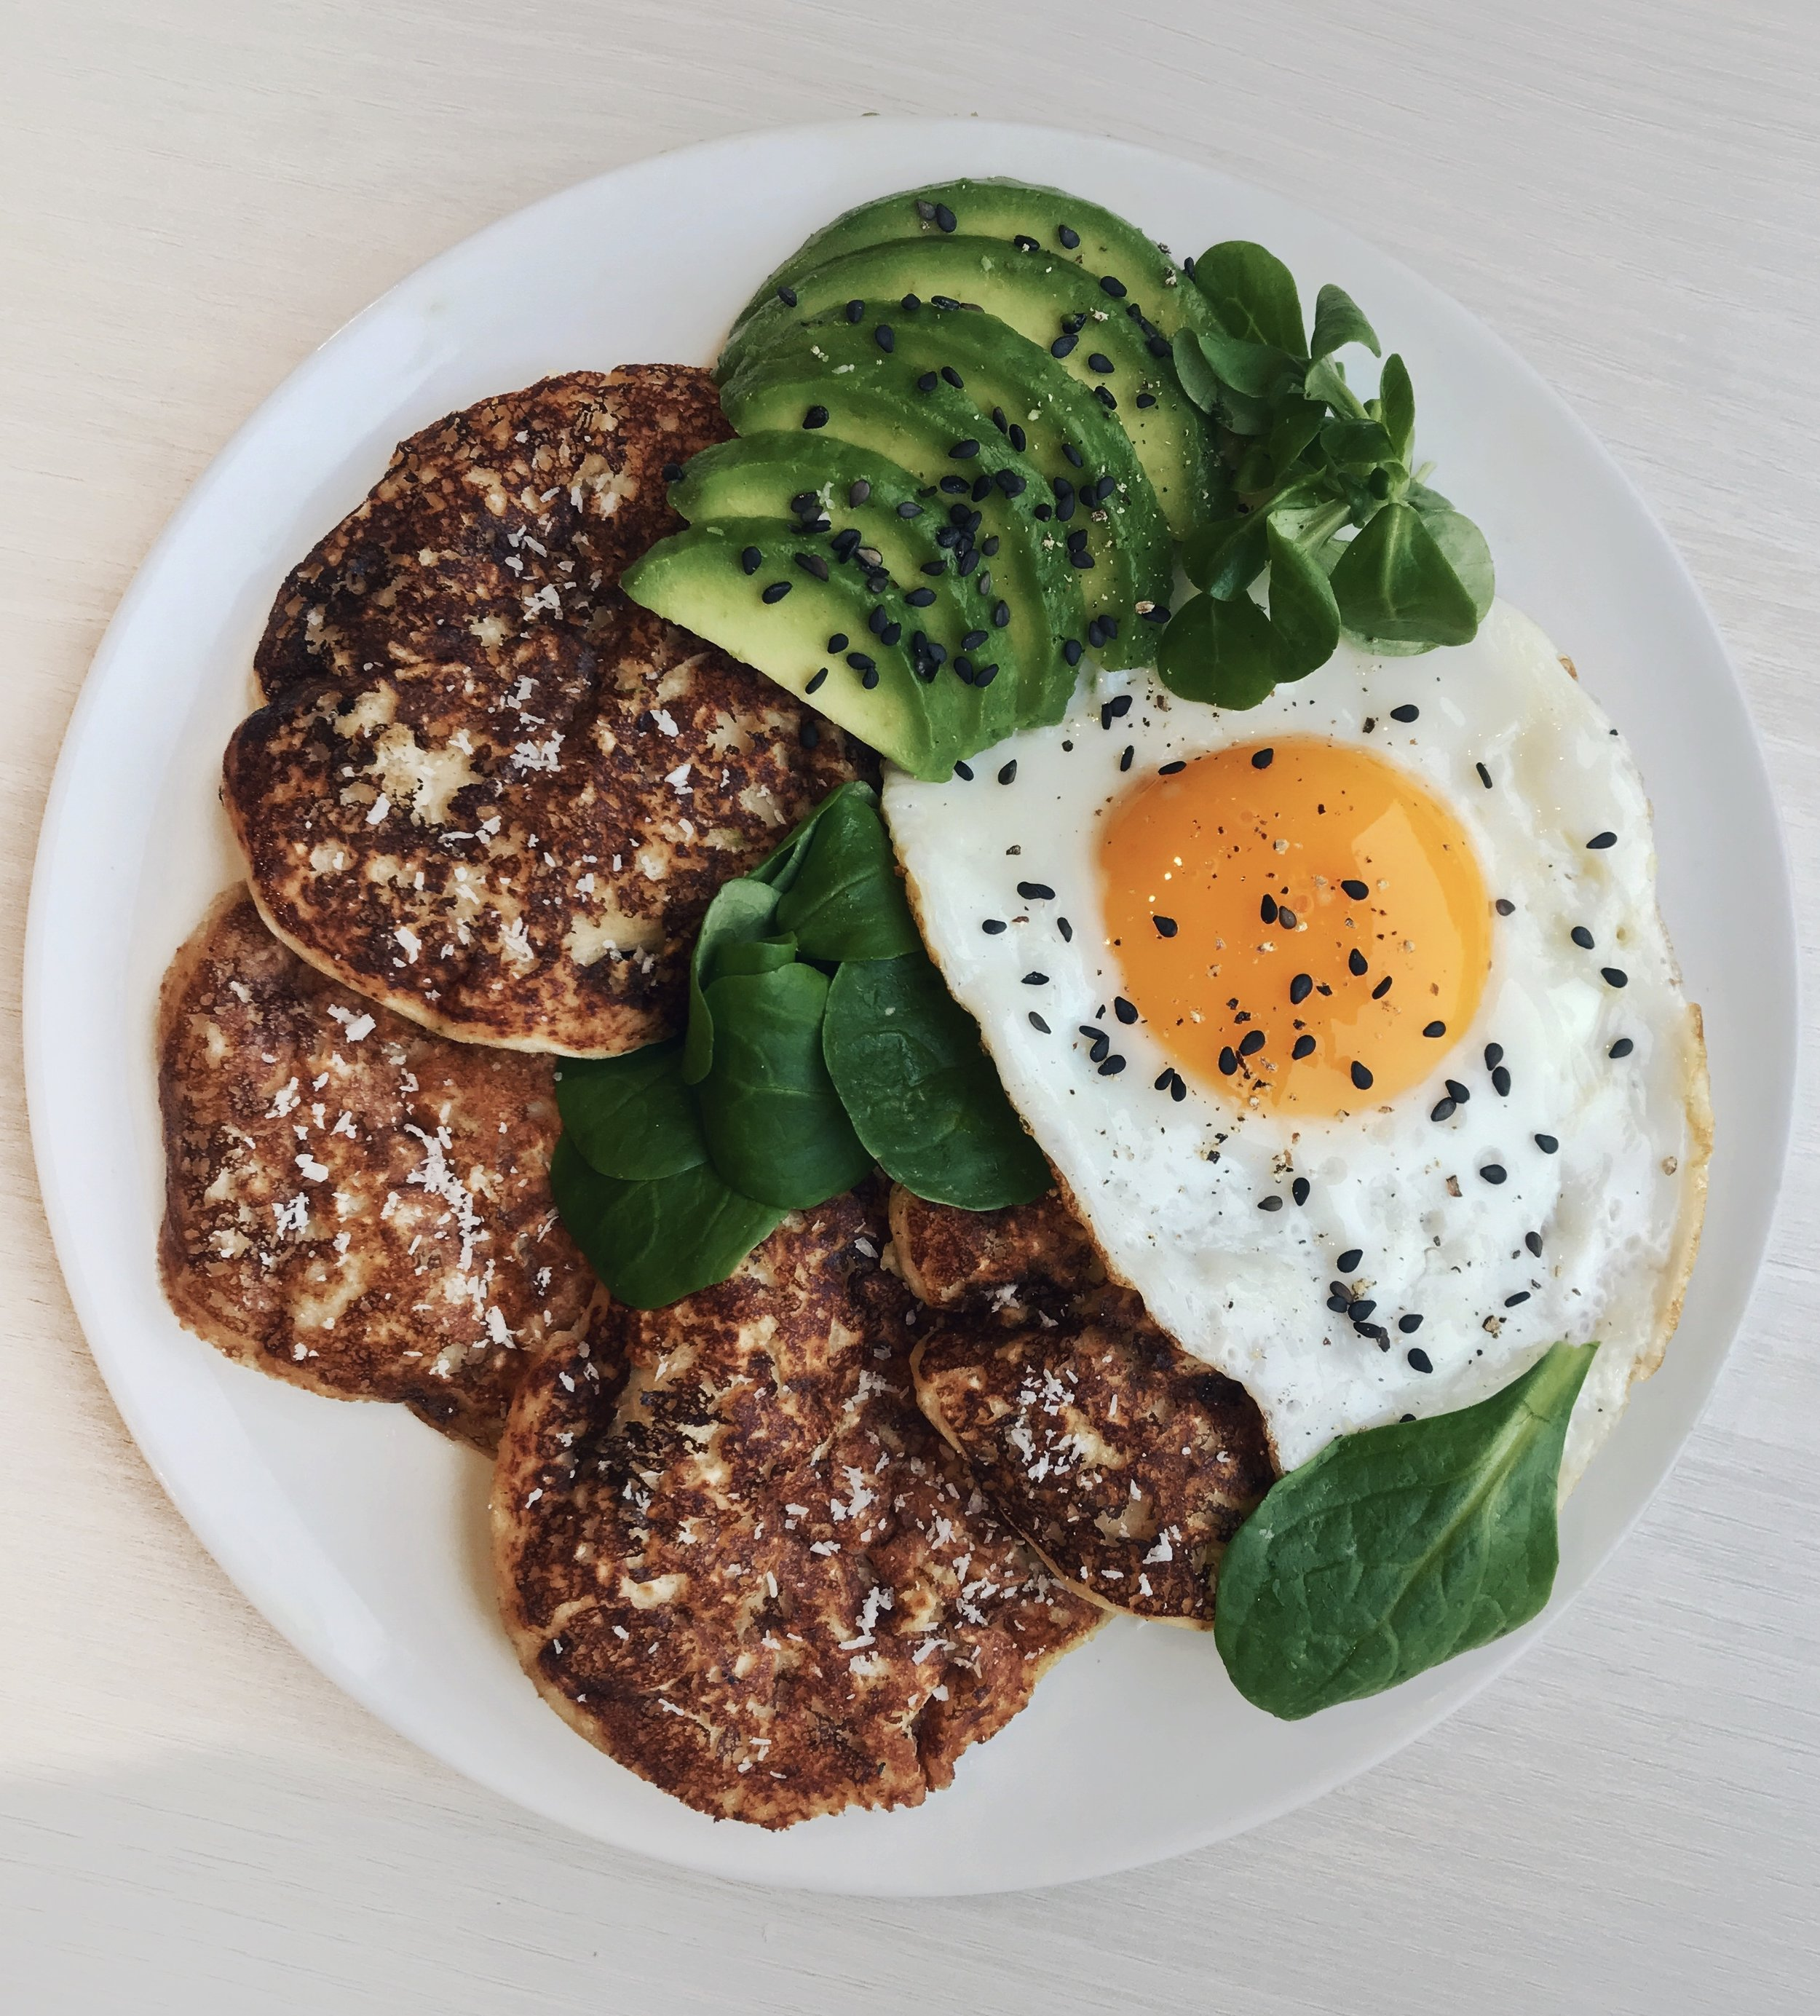 Savory Pancakes with Avocado, Egg & Salad - 4 tbsp @nu3_fralmond flour (30g) + 3 tbsp @quakeroats (20g) + 1/2 tsp baking powder +3 tbsp @tropicanafrapplesauce (50g) + 1 scoop @vitalproteinscollagen (optional) + a pinch of sea salt +2 eggs + 1/3 cup @alprosoy milk (80ml). Mix all the ingredients together with a whisk then cook on low heat with coconut oil. Serve with a crispy fried egg,@naturalia_magasins_bioavocado and salad